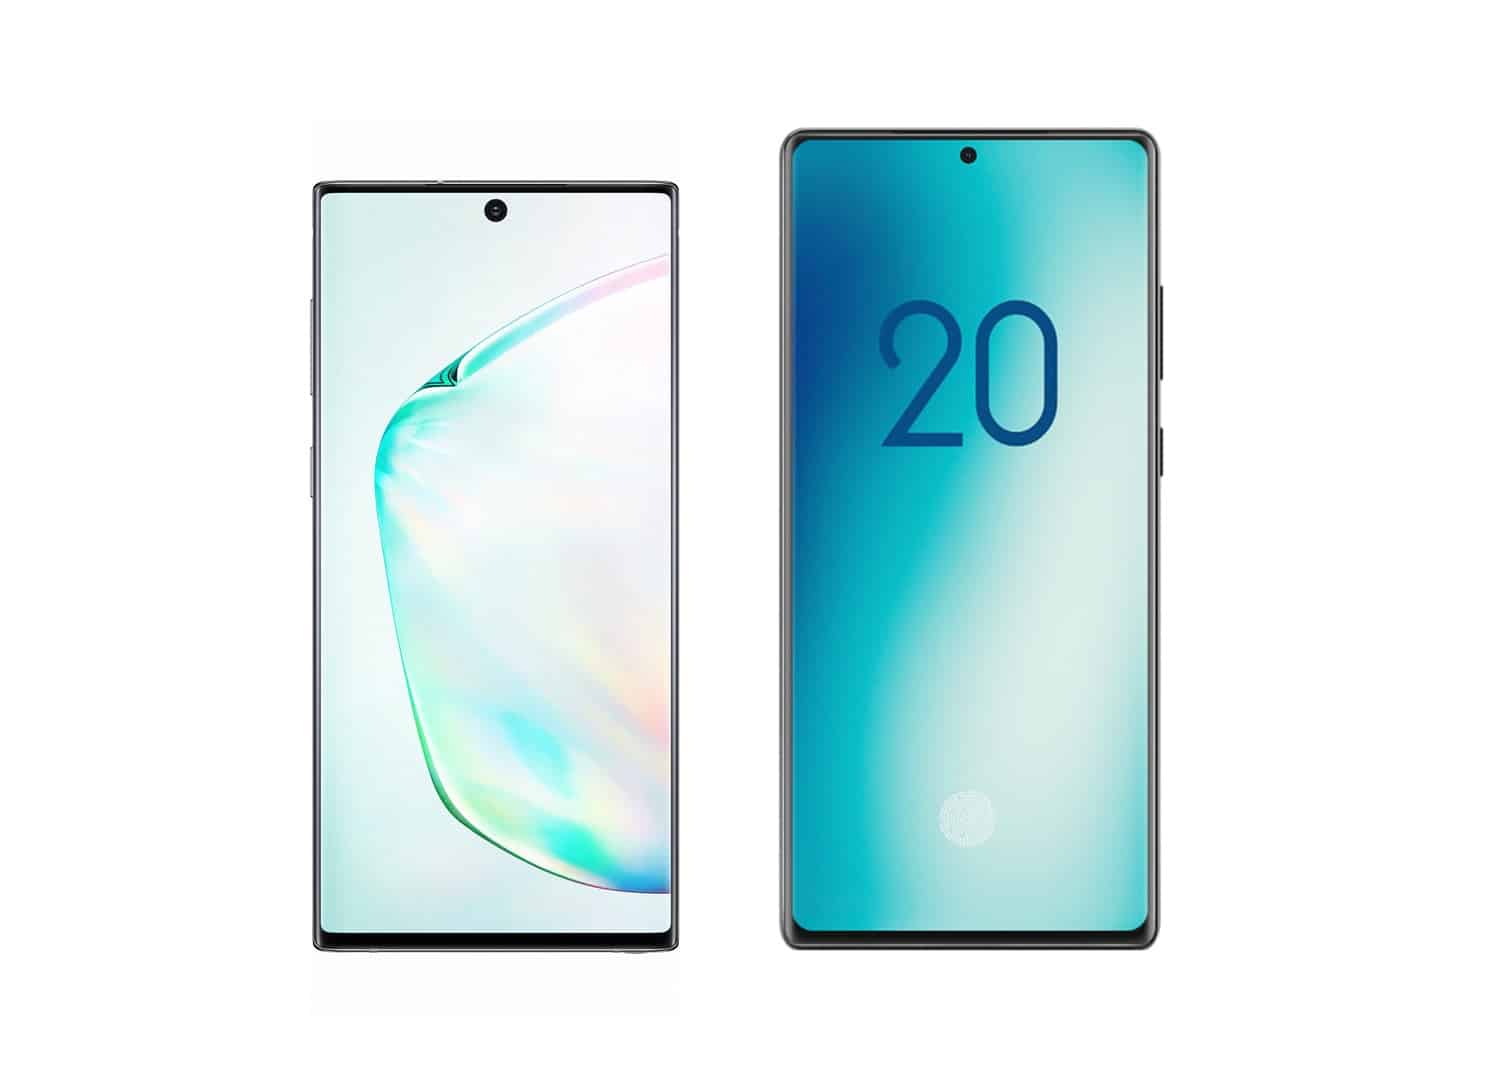 Galaxy Note 10 vs Note 20 size comparison pre launch 2